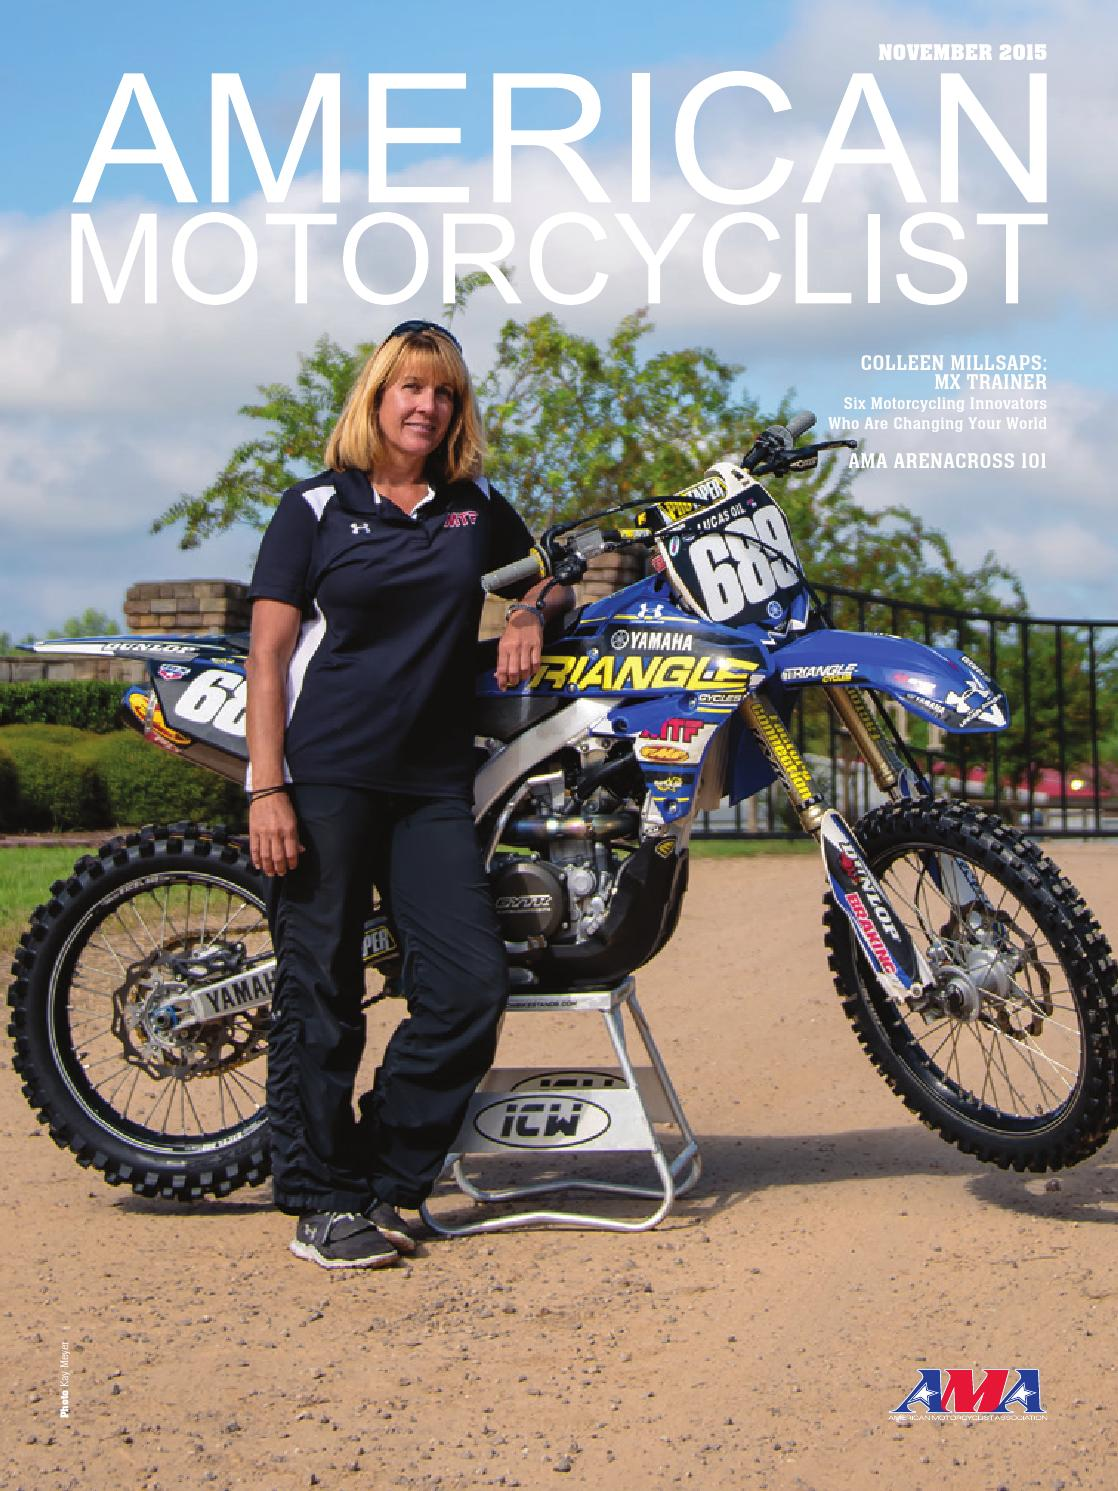 superb american motorcyclist #3: American Motorcyclist November 2015 Dirt